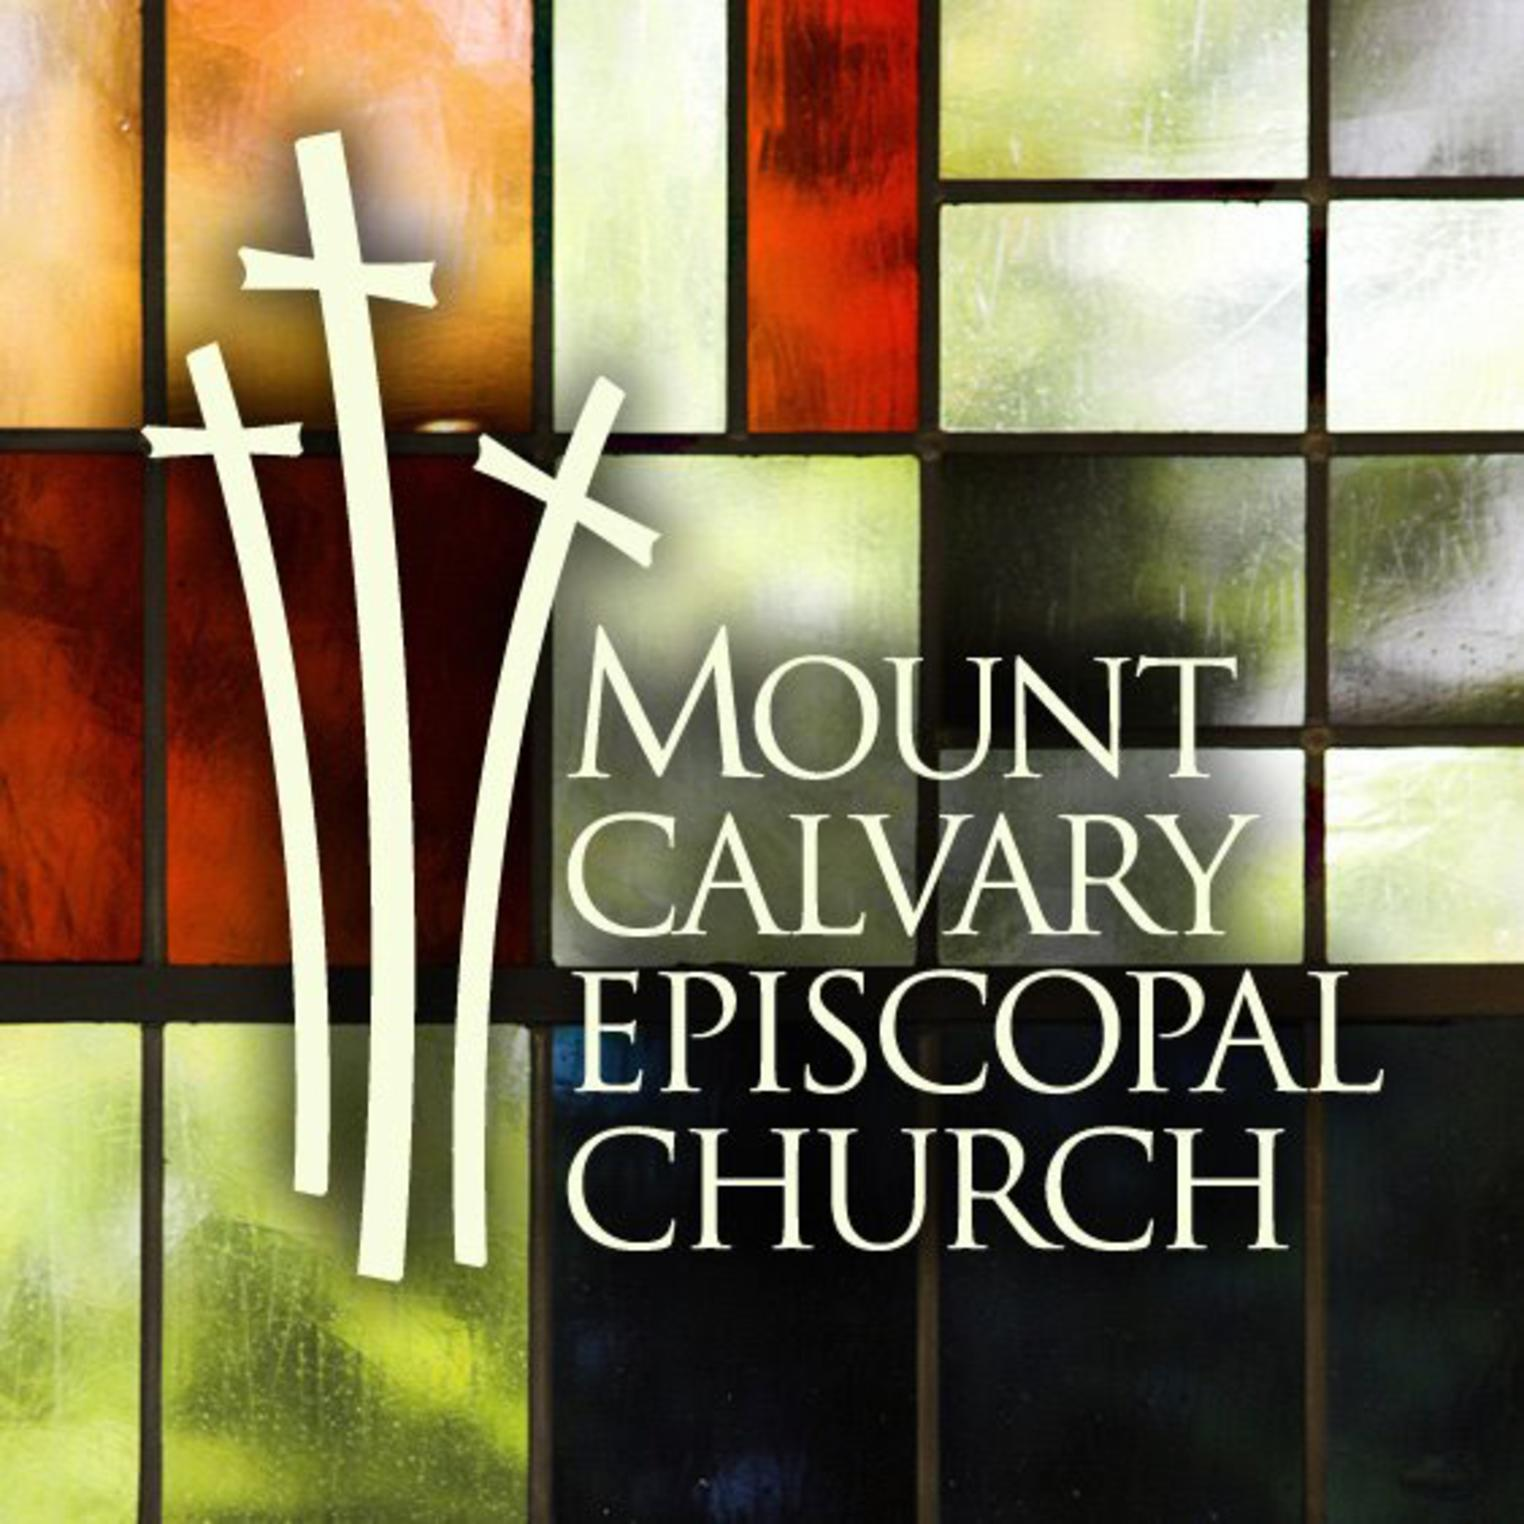 Mt. Calvary Episcopal Church